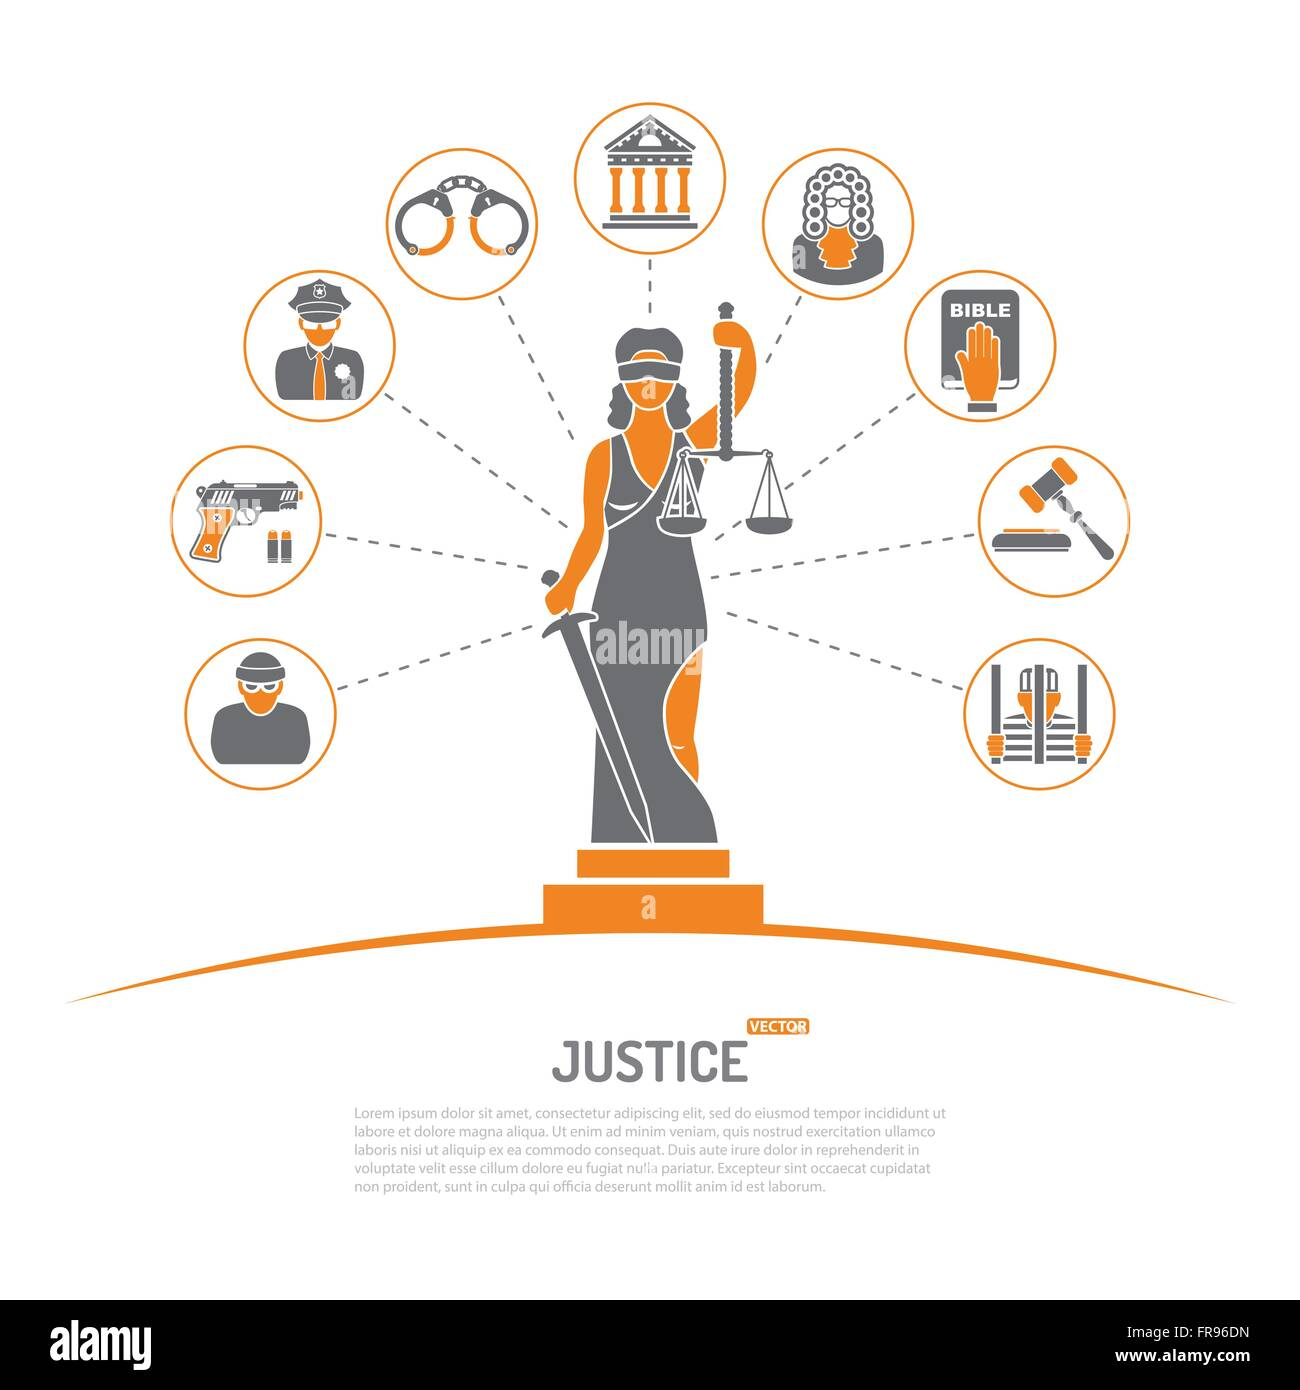 Lady Justice Concept Stock Vector Image & Art - Alamy